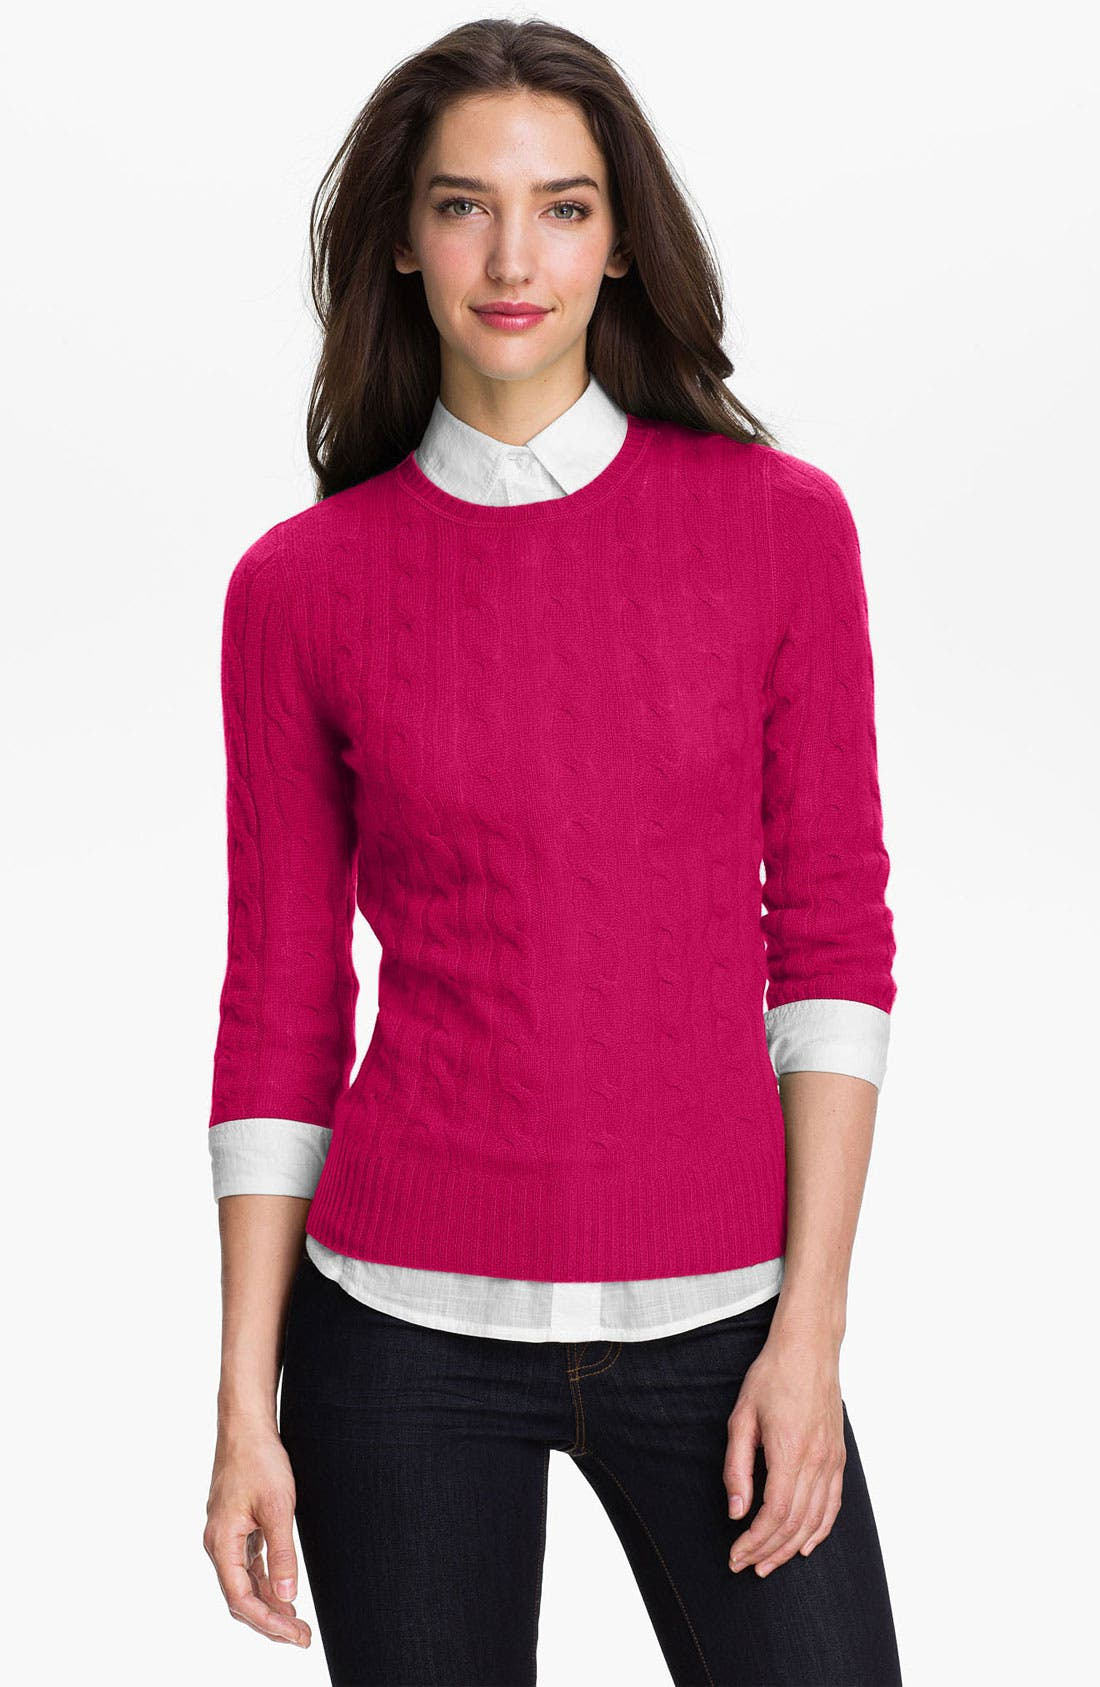 Cable Cashmere Sweater,                         Main,                         color, Pink Fuchsia